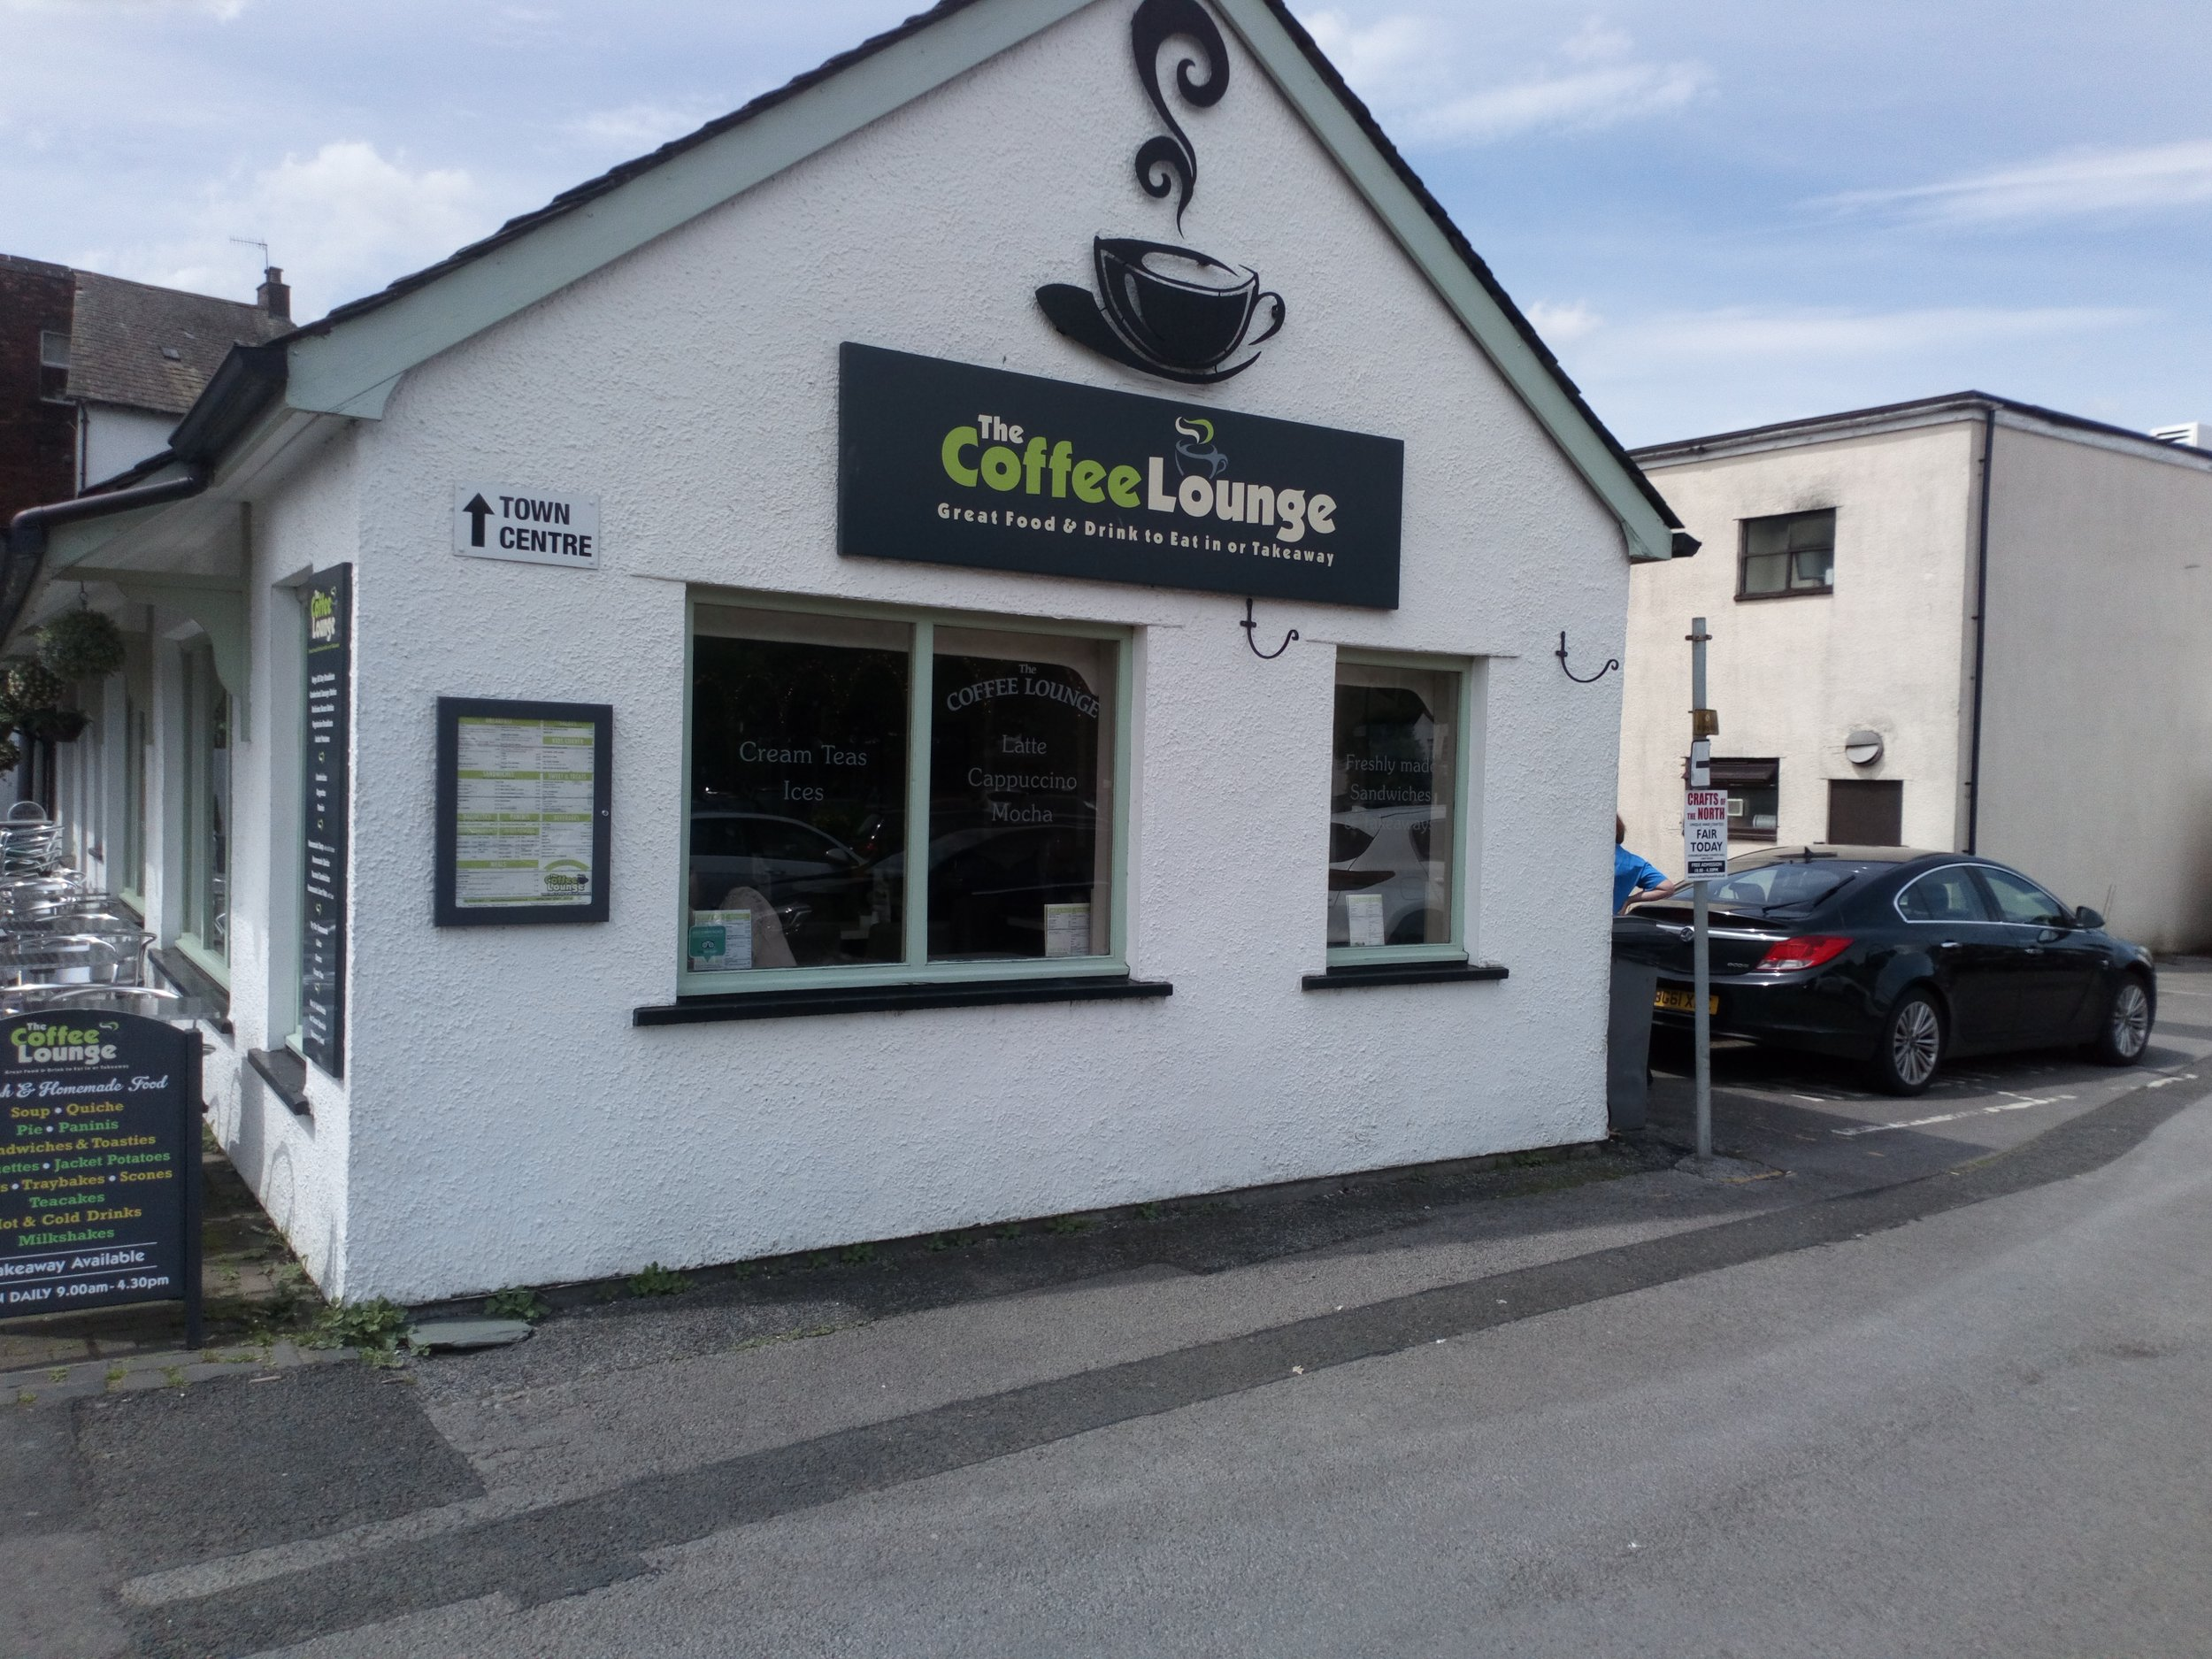 The Coffee Lounge   The Coffee Lounge is a family owned business in the centre of Keswick, providing freshly cooked meals, sandwiches, light snacks, and great tea and coffee and cold drinks in a relaxed, comfortable environment. We also offer a large selection of freshly baked cakes, tray bakes and scones, all made on the premises. We offer outside seating and a take-away service. Why not come along and relax and refuel before climbing your next mountain! Find us alongside Bell Close car park, away from the hustle and bustle of the main street. A warm welcome to all visitors is assured.  www.thecoffeeloungeinkeswick.co.uk  5 Luptons Court, Keswick, CA12 5JL  01768 773075